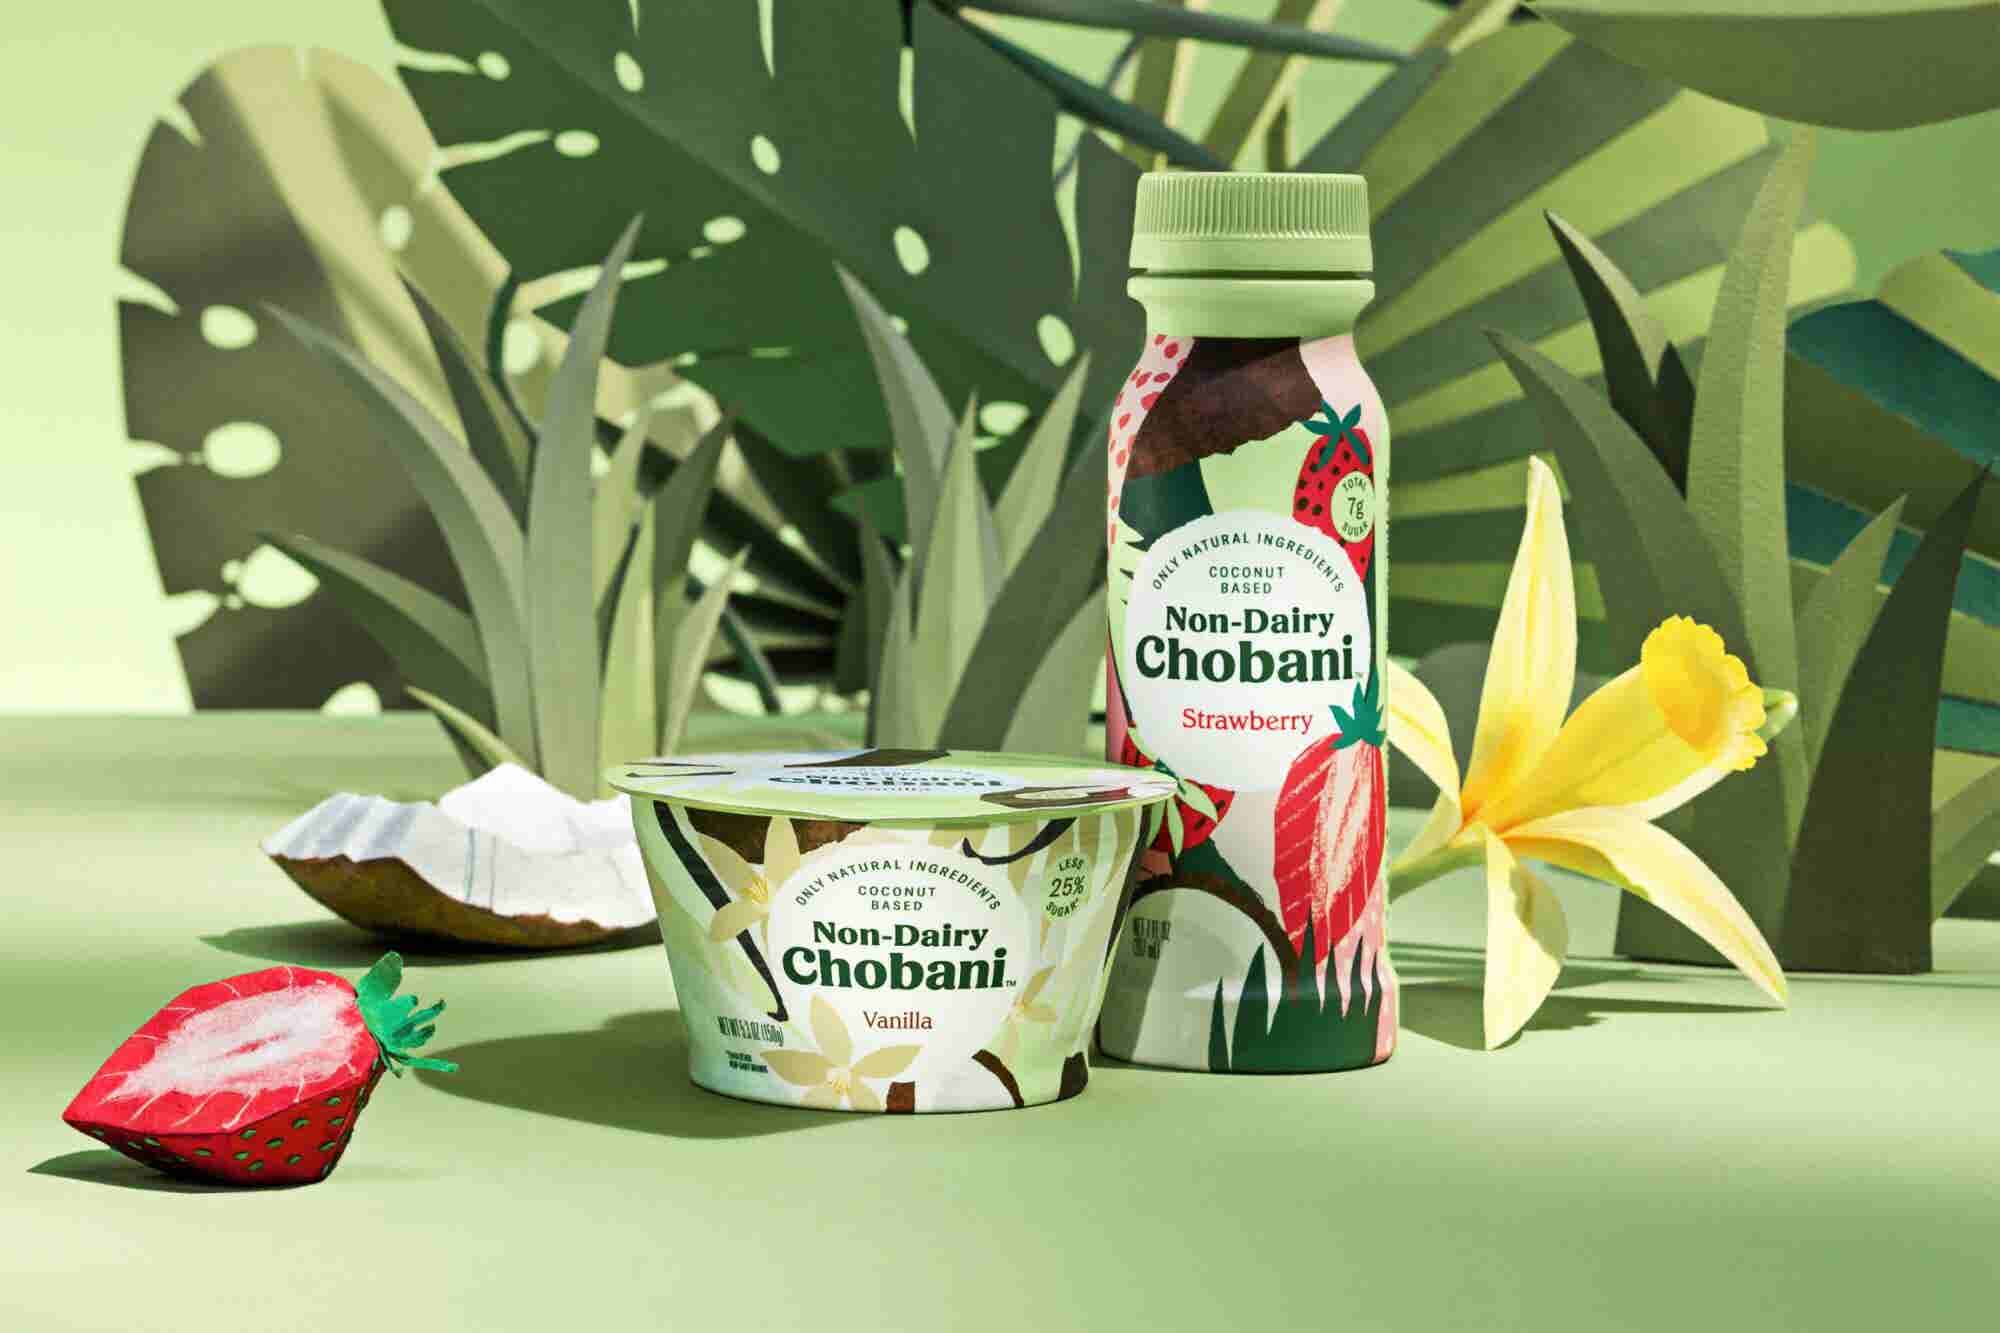 Chobani to Introduce Non-Dairy Products, Capitalizing on a Growing Market